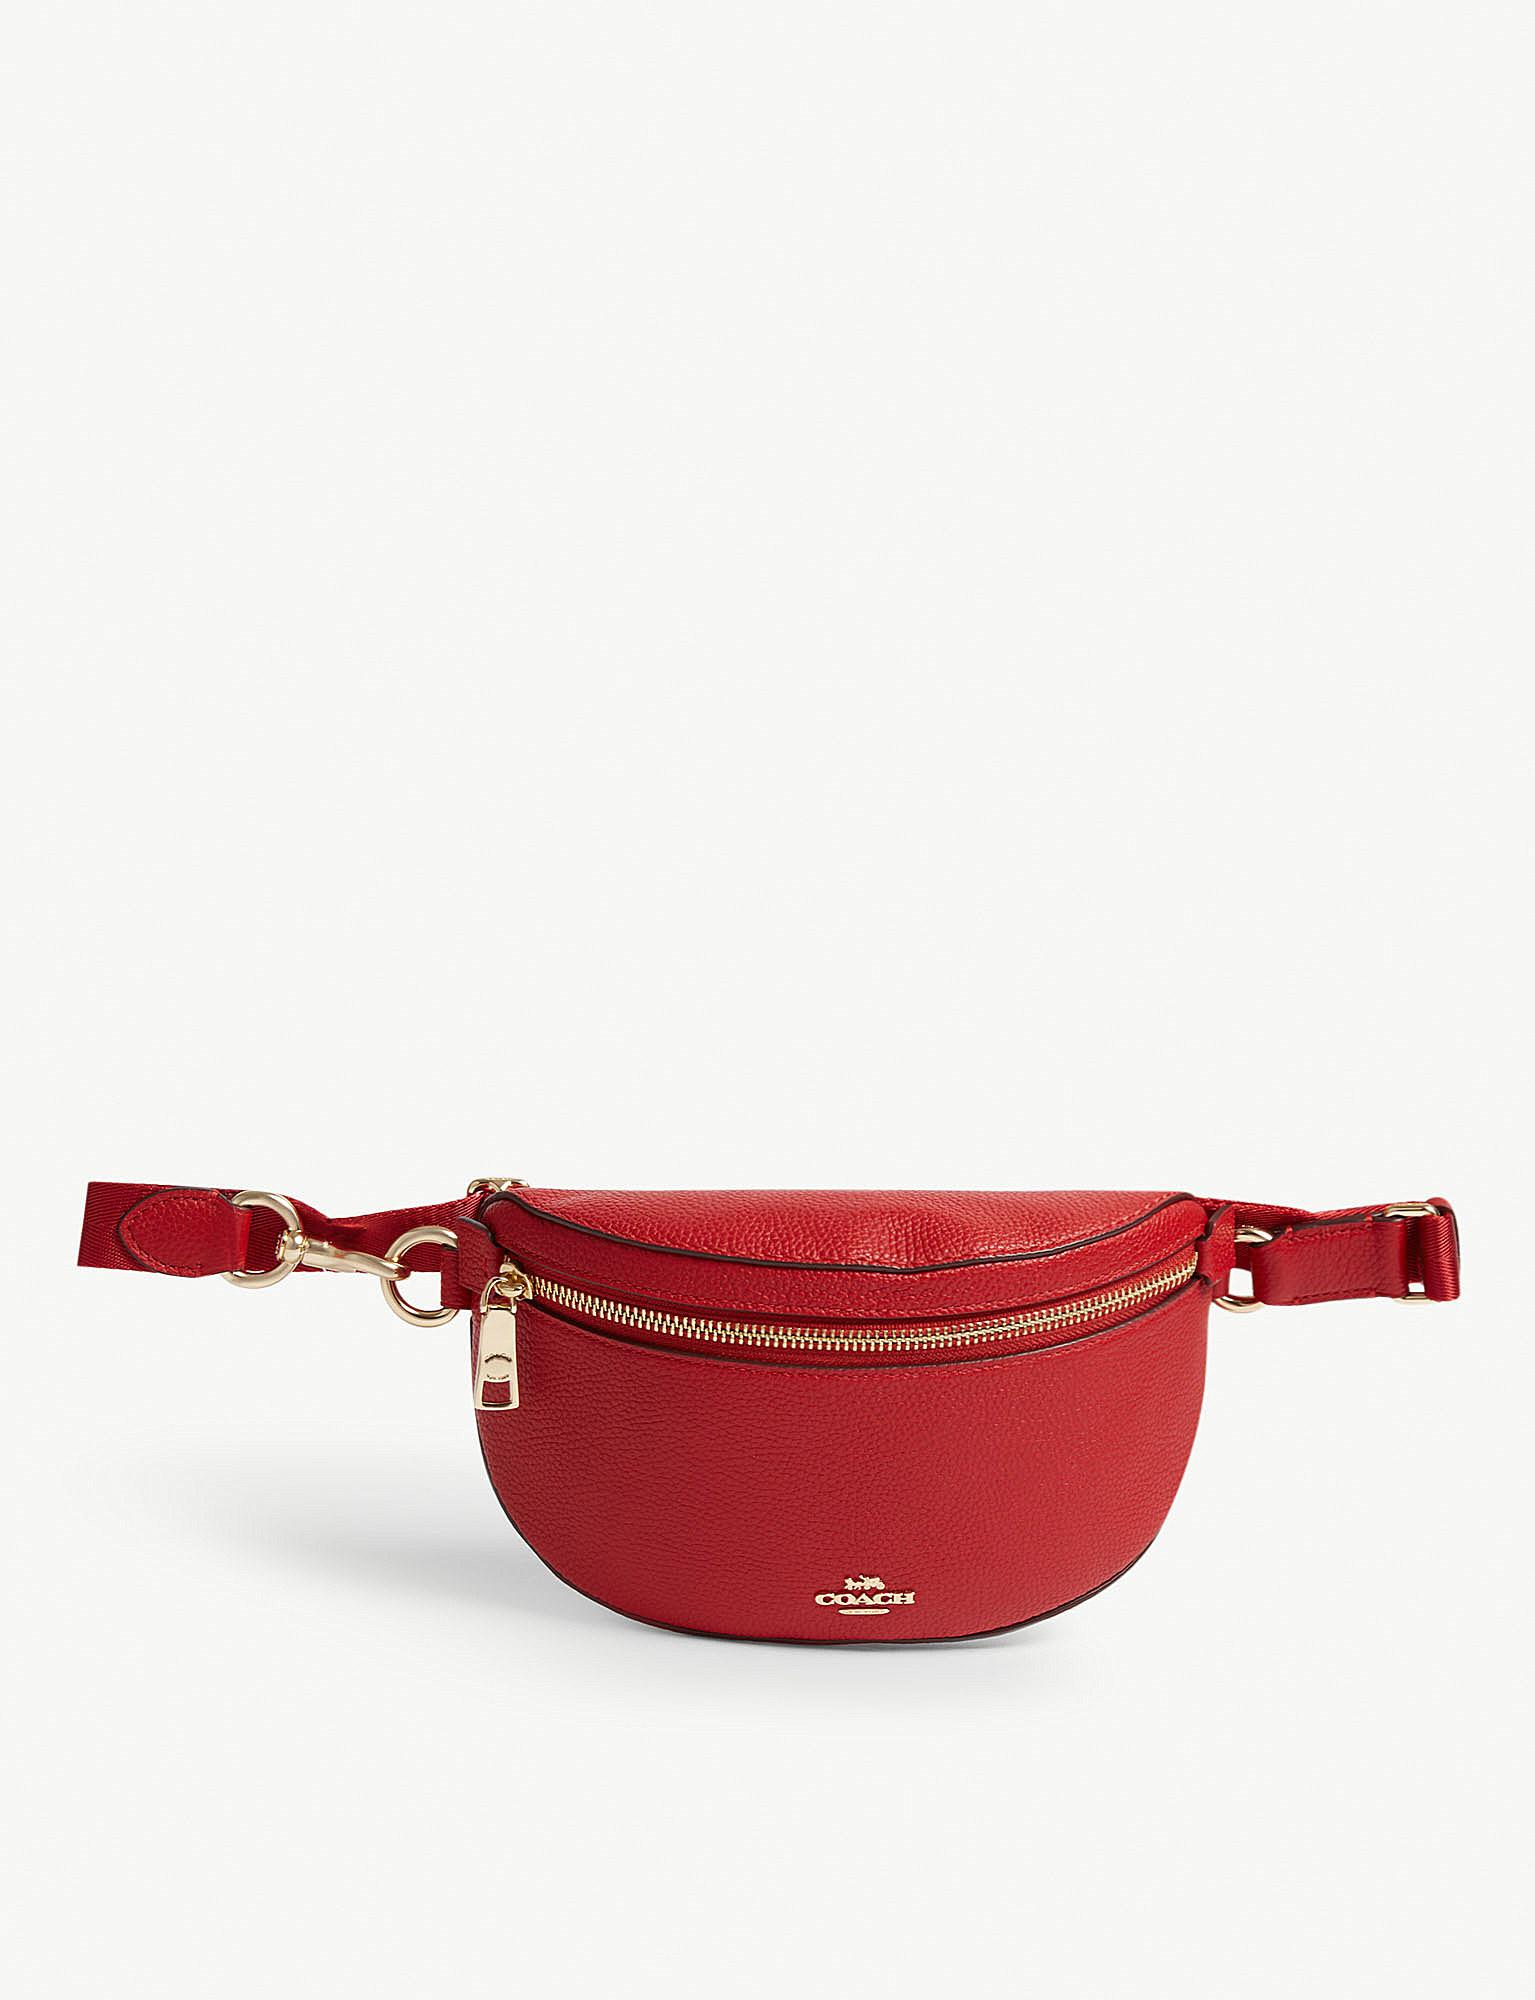 ef9aba427e71 Coach Leather Belt Bag in Red - Lyst